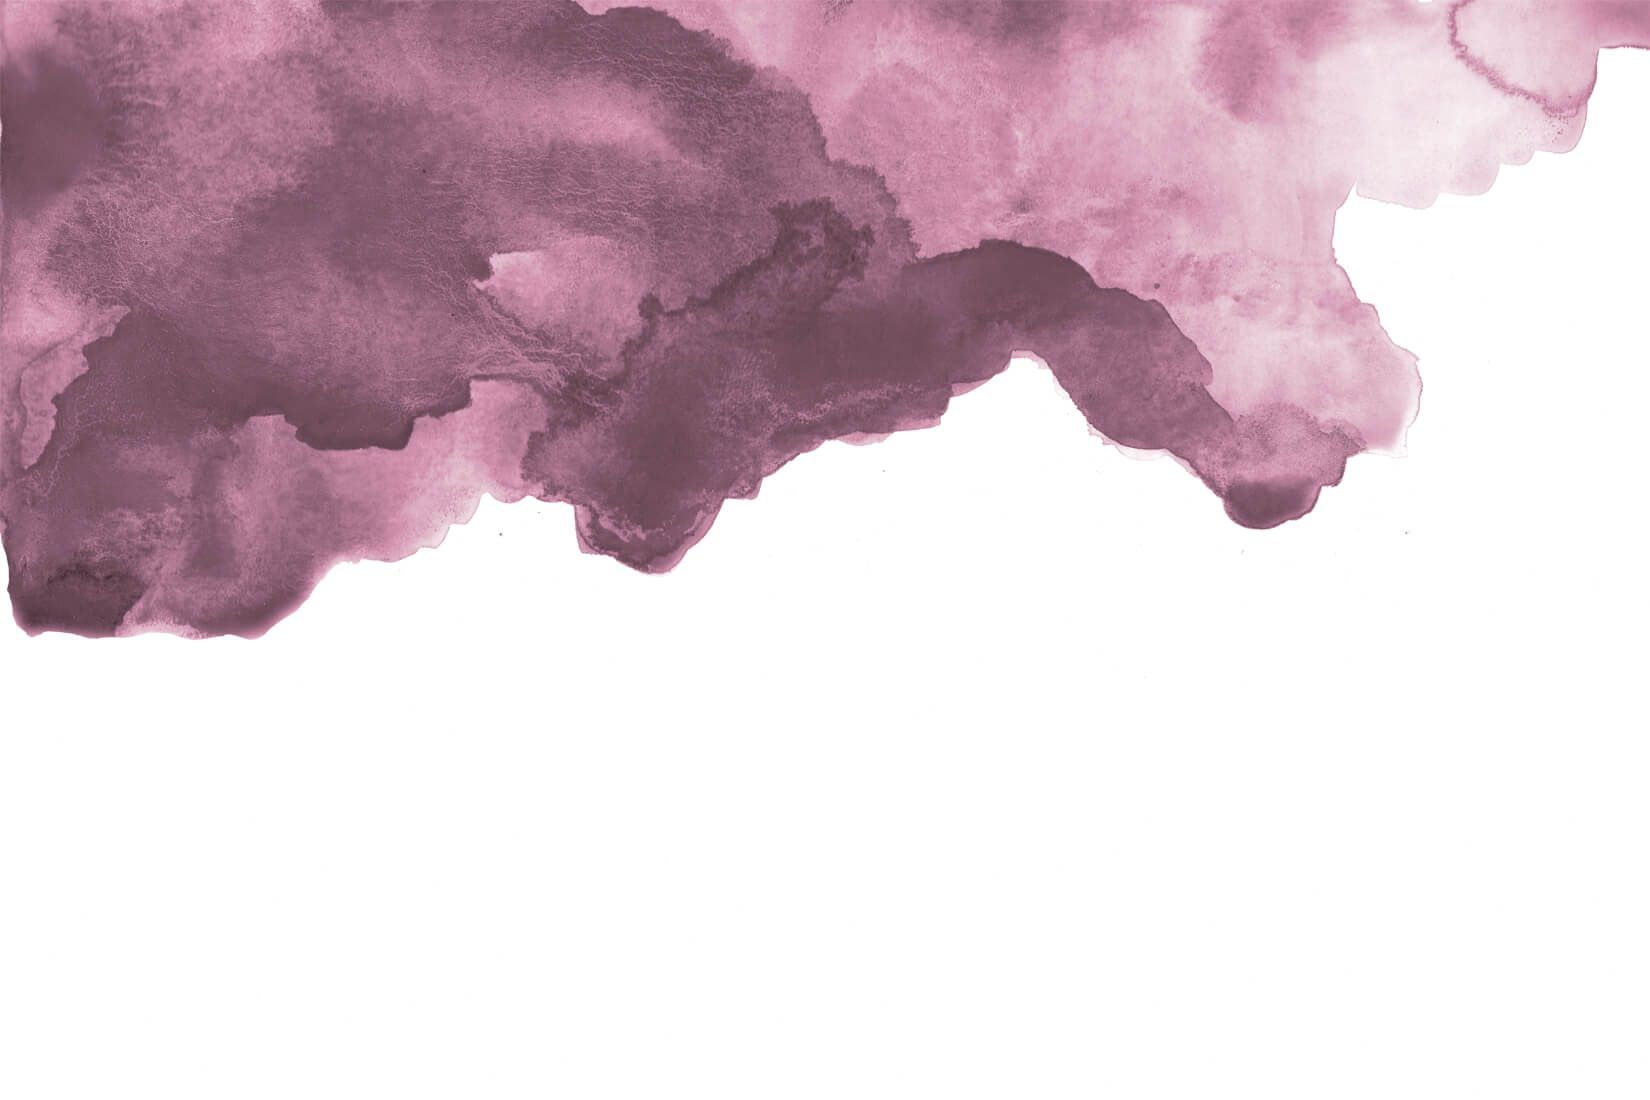 Purple Watercolor Wallpaper Muralswallpaper Watercolor